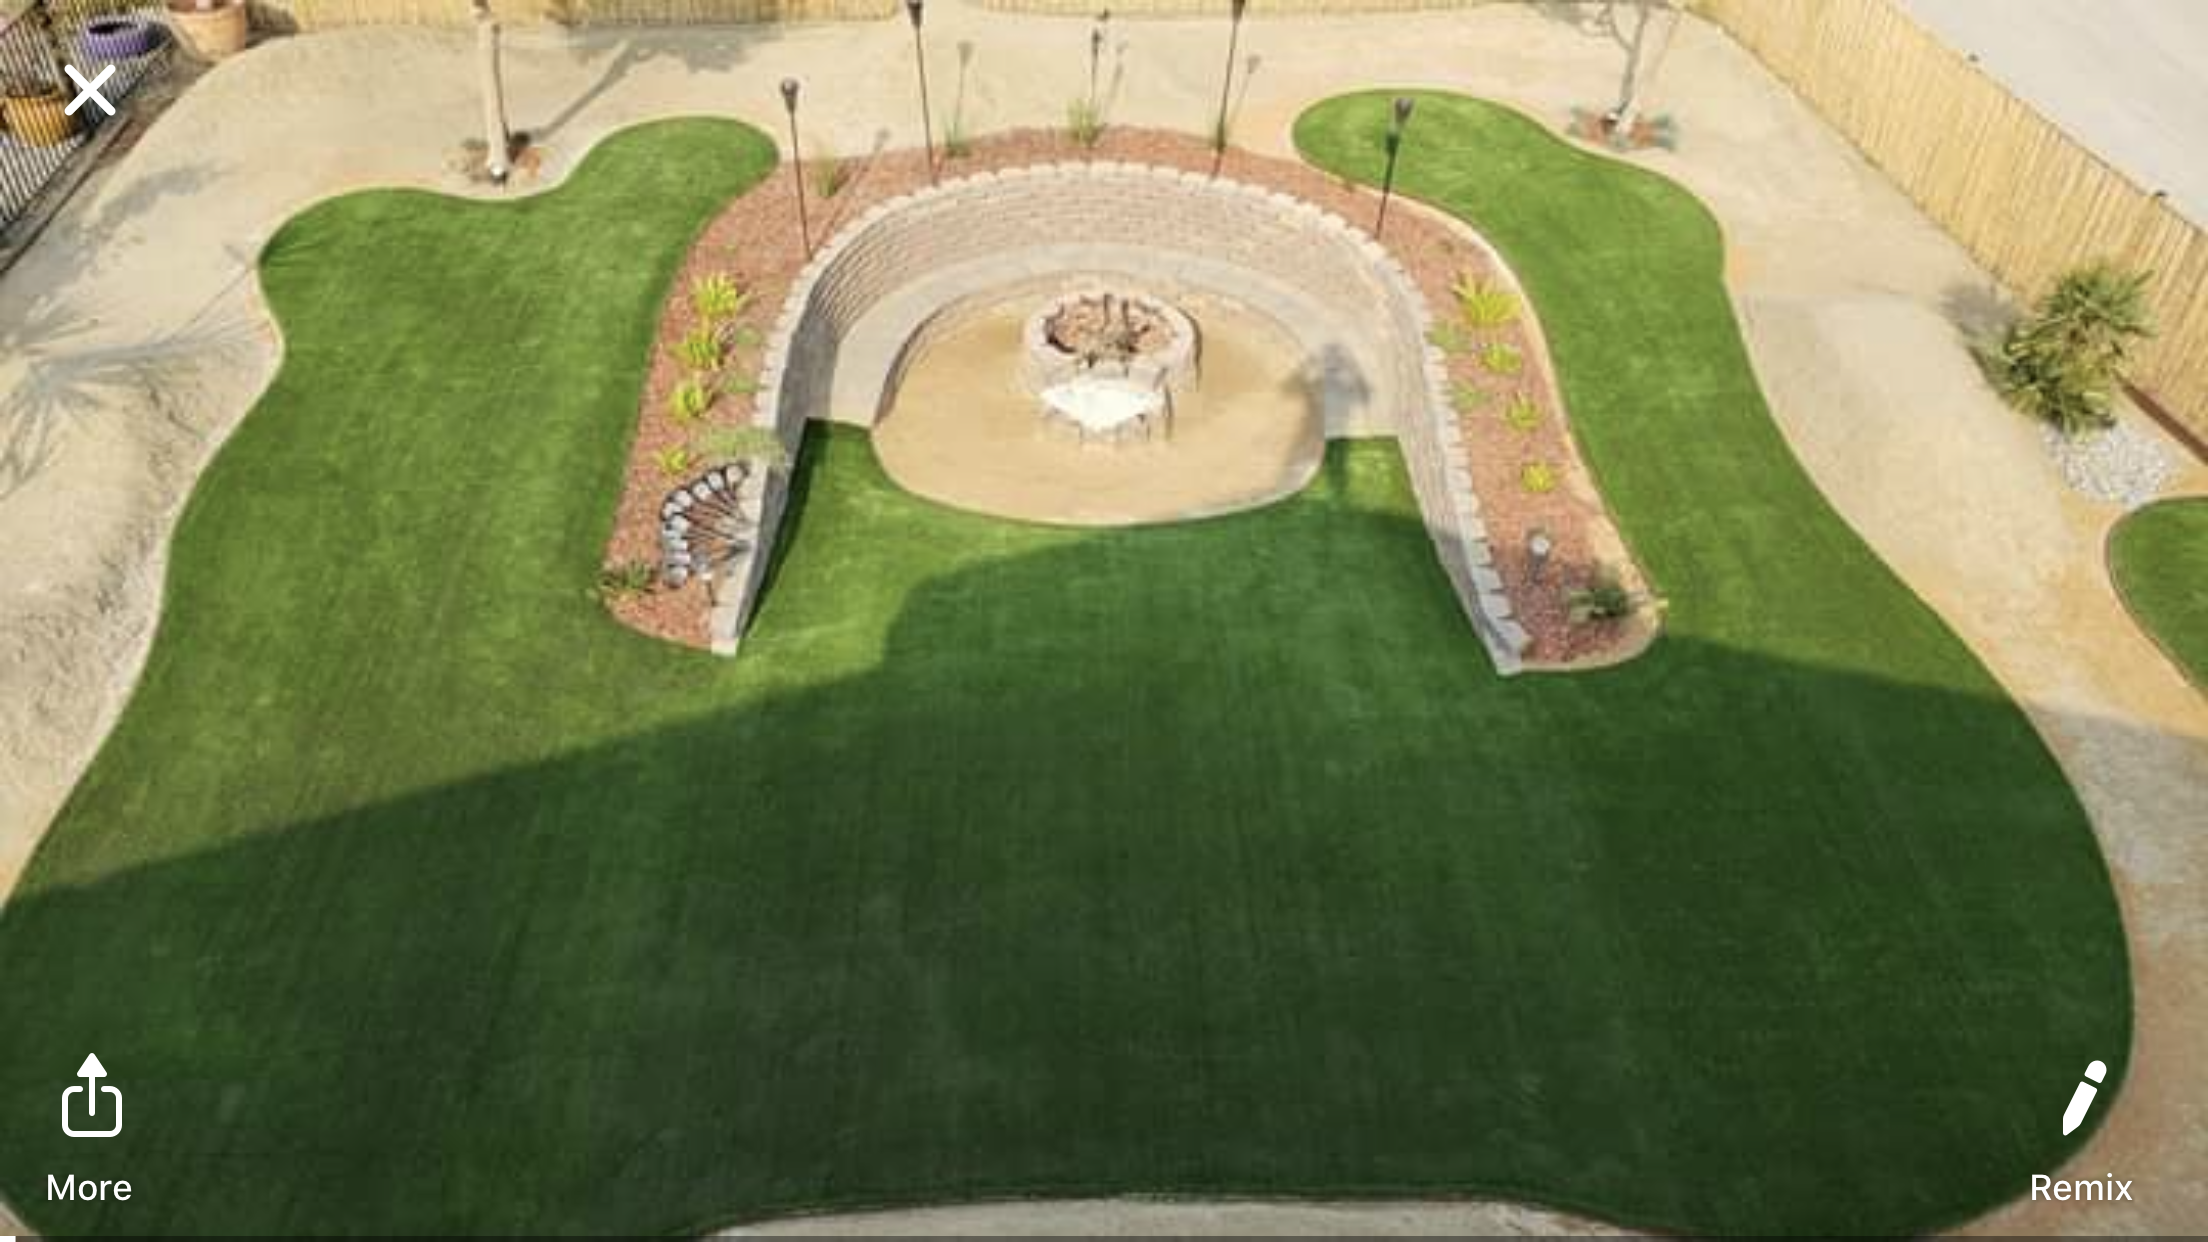 Cool Blue Hollow Lime artificial turf,synthetic turf,artificial turf installation,how to install artificial turf,used artificial turf,fake grass for yard,backyard turf,turf backyard,turf yard,fake grass for backyard